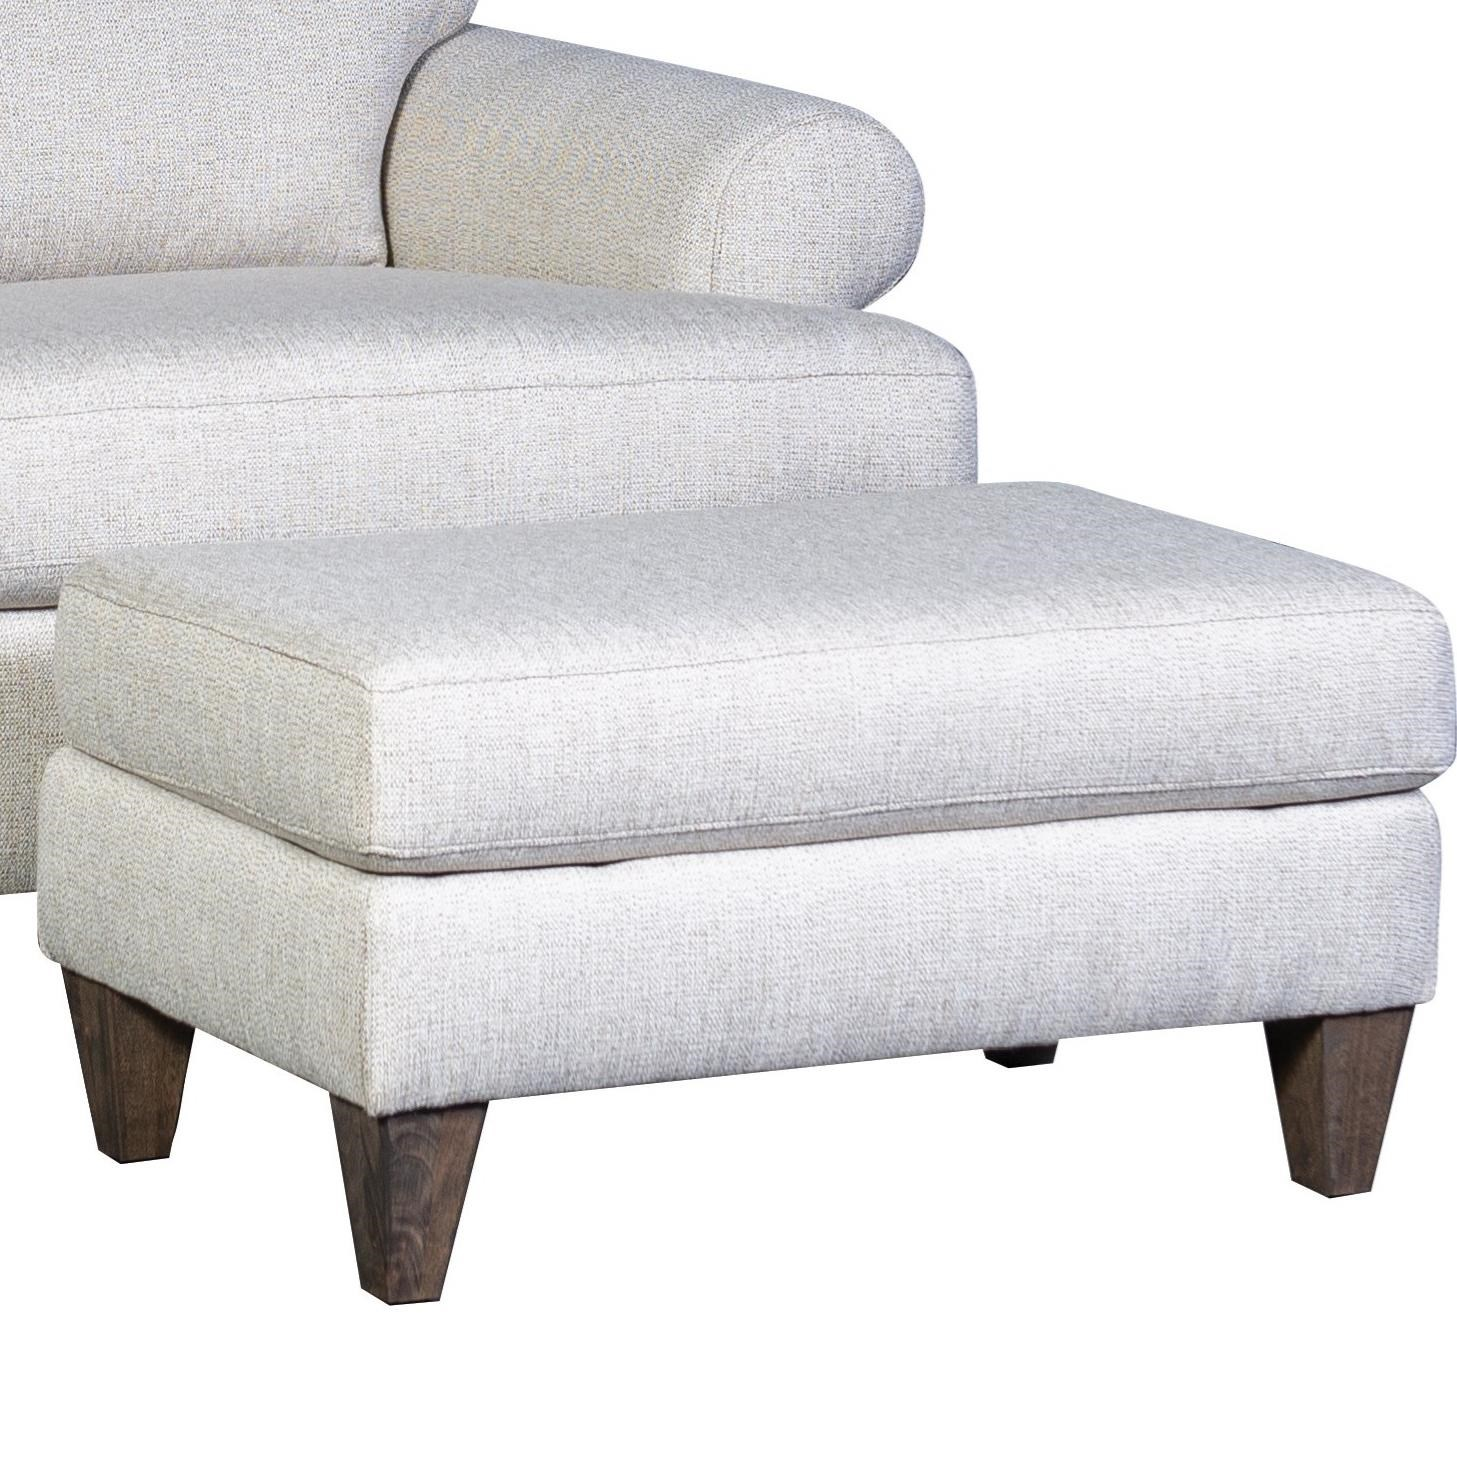 3270 Ottoman by Mayo at Wilson's Furniture